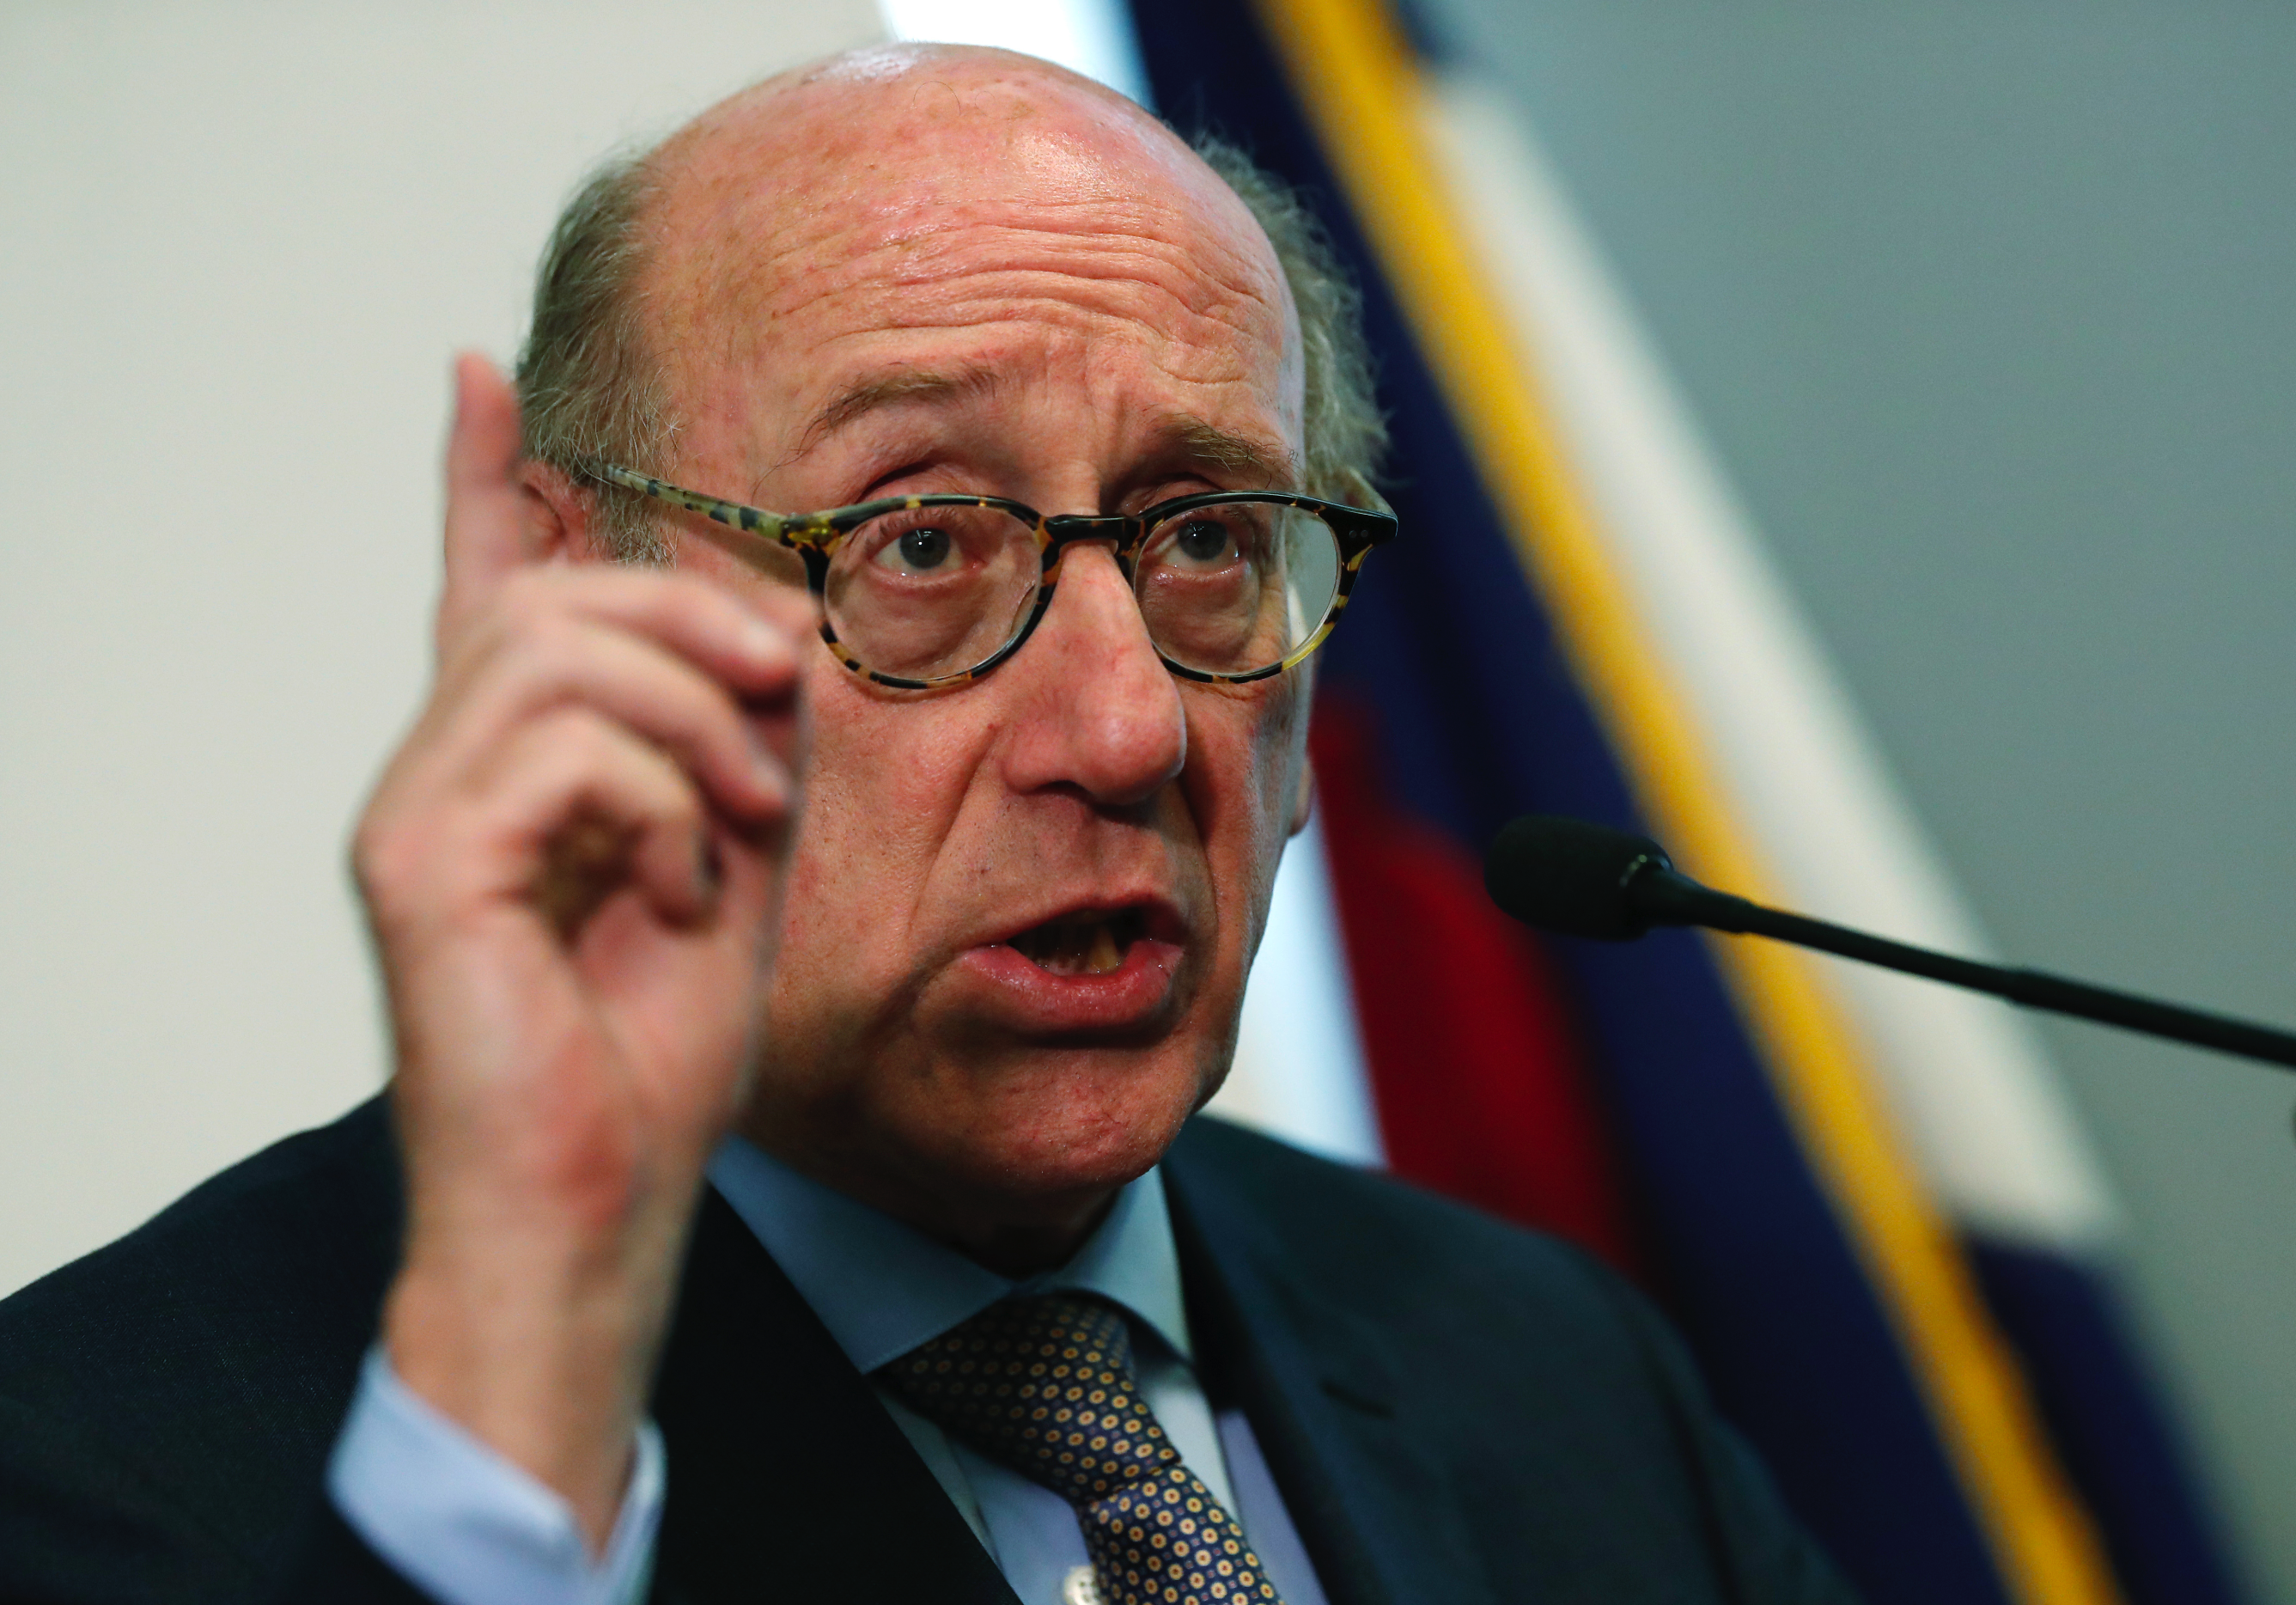 Kenneth Feinberg, who is leading a program to compensate people who were abused by Catholic priests in Colorado, speaks during a news conference to announce that the program is now open for the submission of claims Monday, Oct. 7, 2019, in Denver. Administrators said that they were sending out packets to 65 people who previously reported abuse to the church to ask if they would like to submit a claim against the three archdioceses--Denver, Colorado Springs and Pueblo.